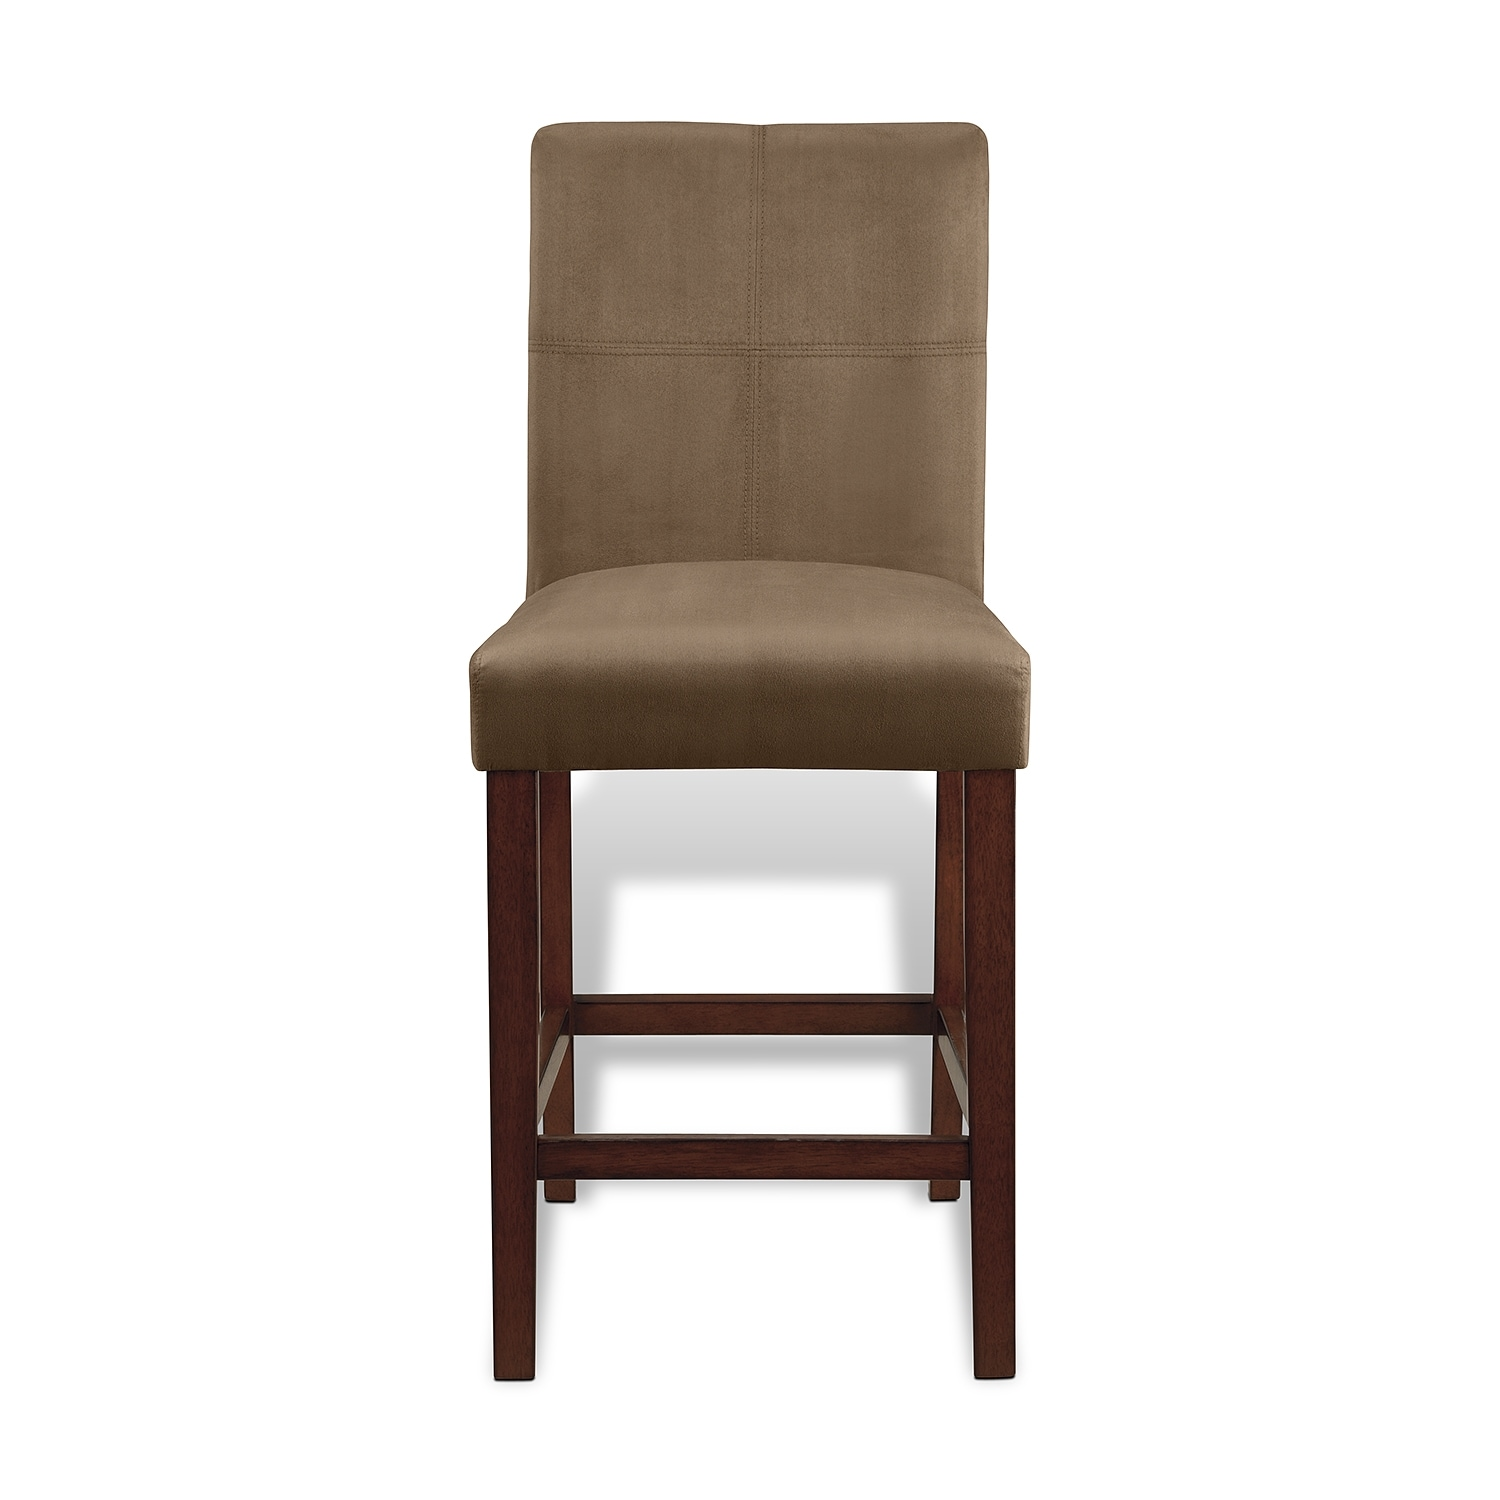 Cornerstone II Dining Room Counter Height Stool Value City Furniture